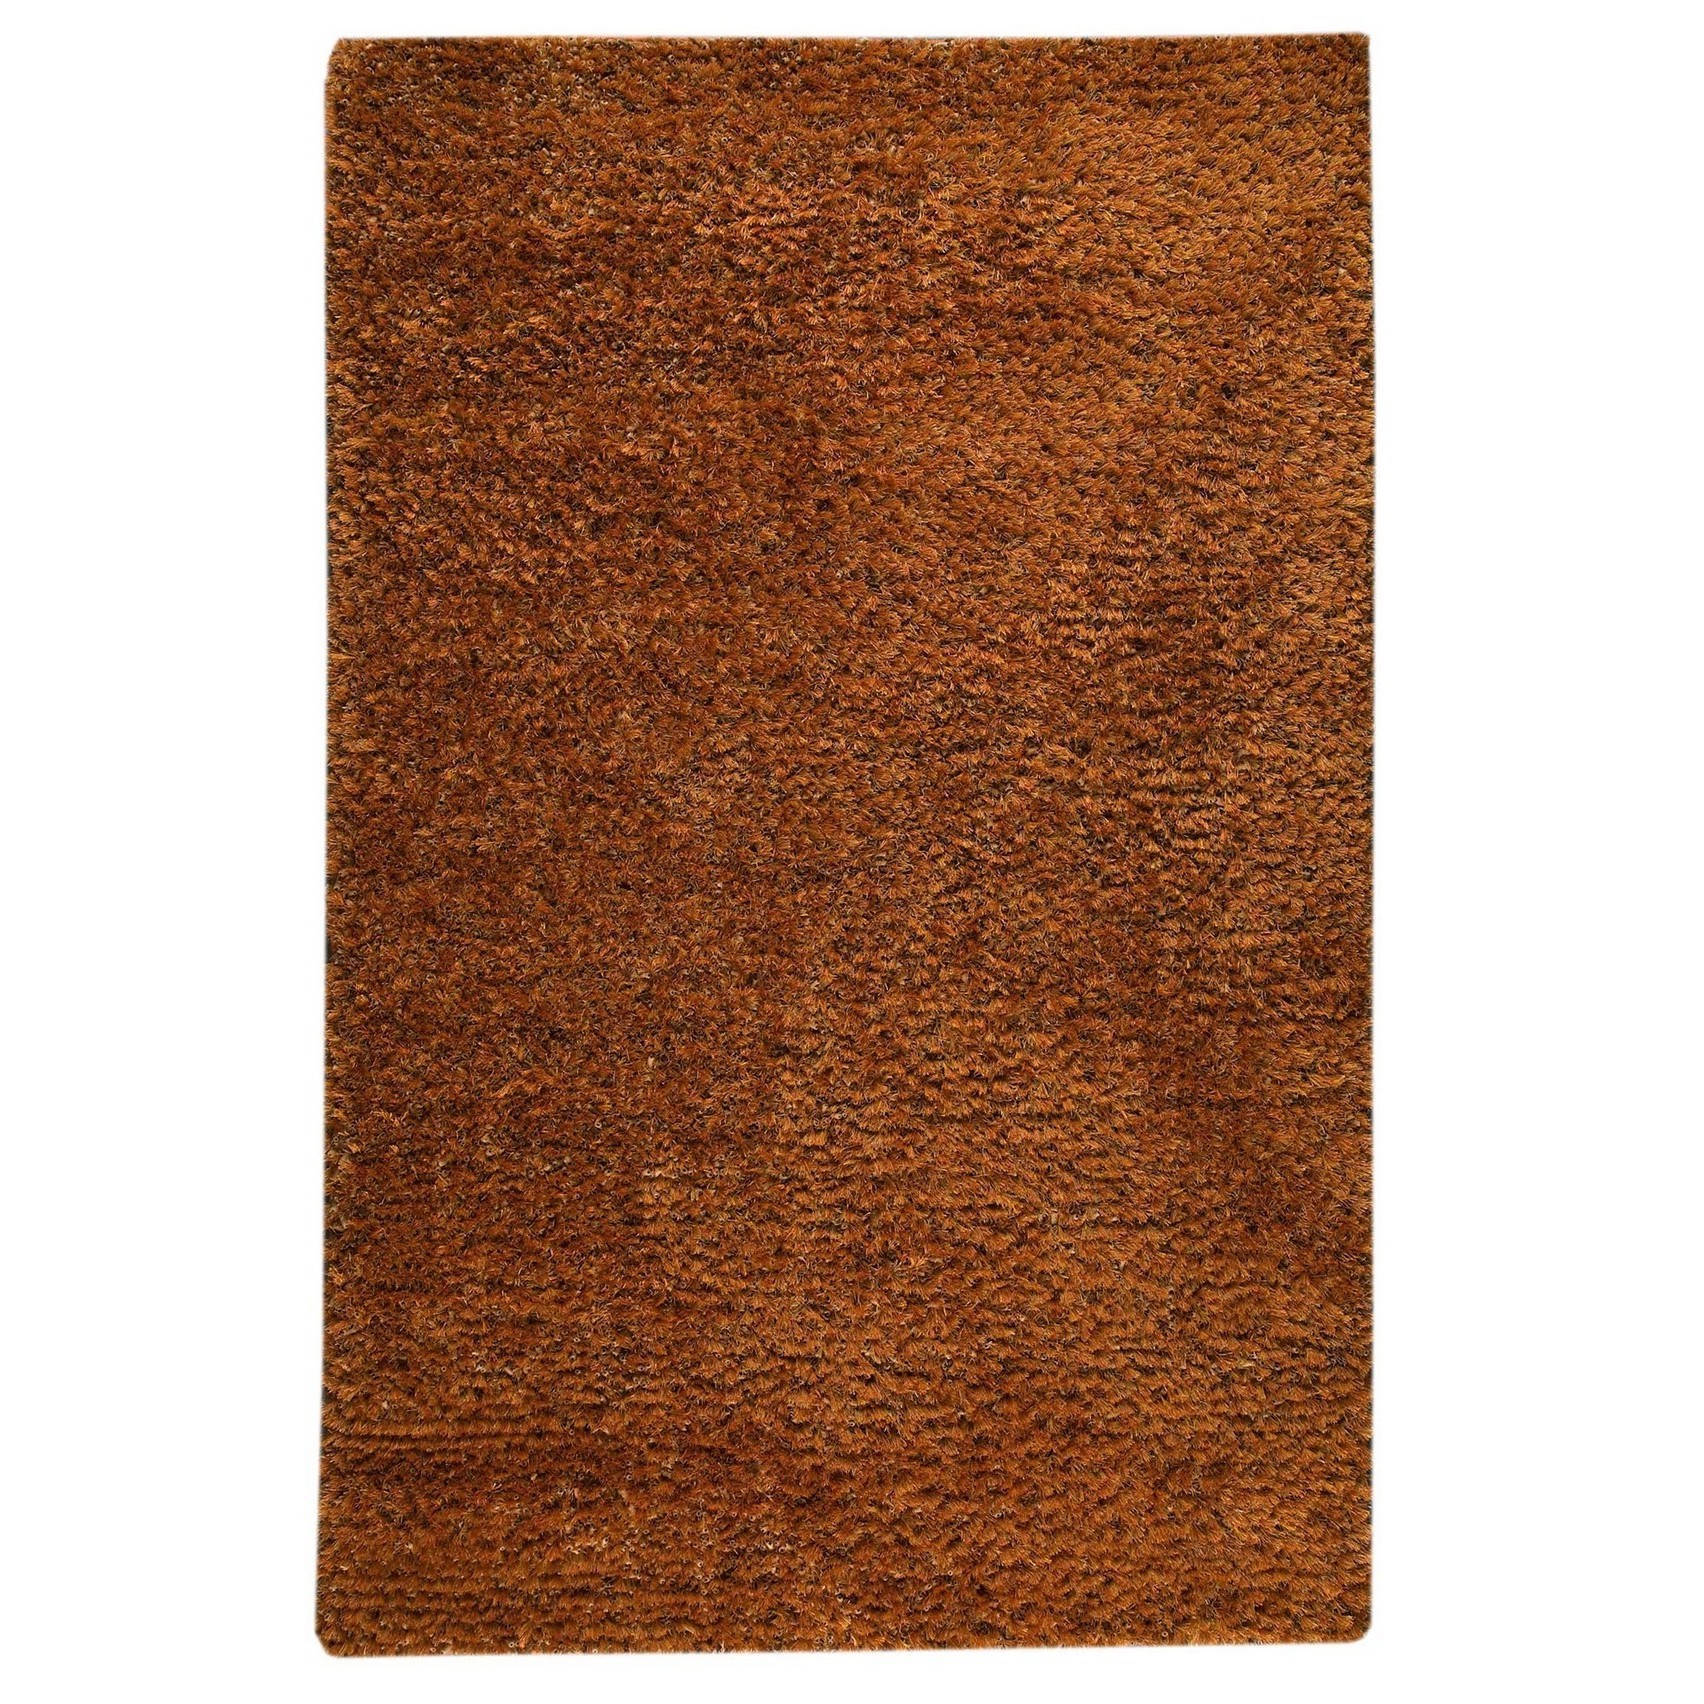 MA Trading M.A.Trading Hand-woven Malibu Orange Wool/ Polyester Rug (8' x 10') (India)